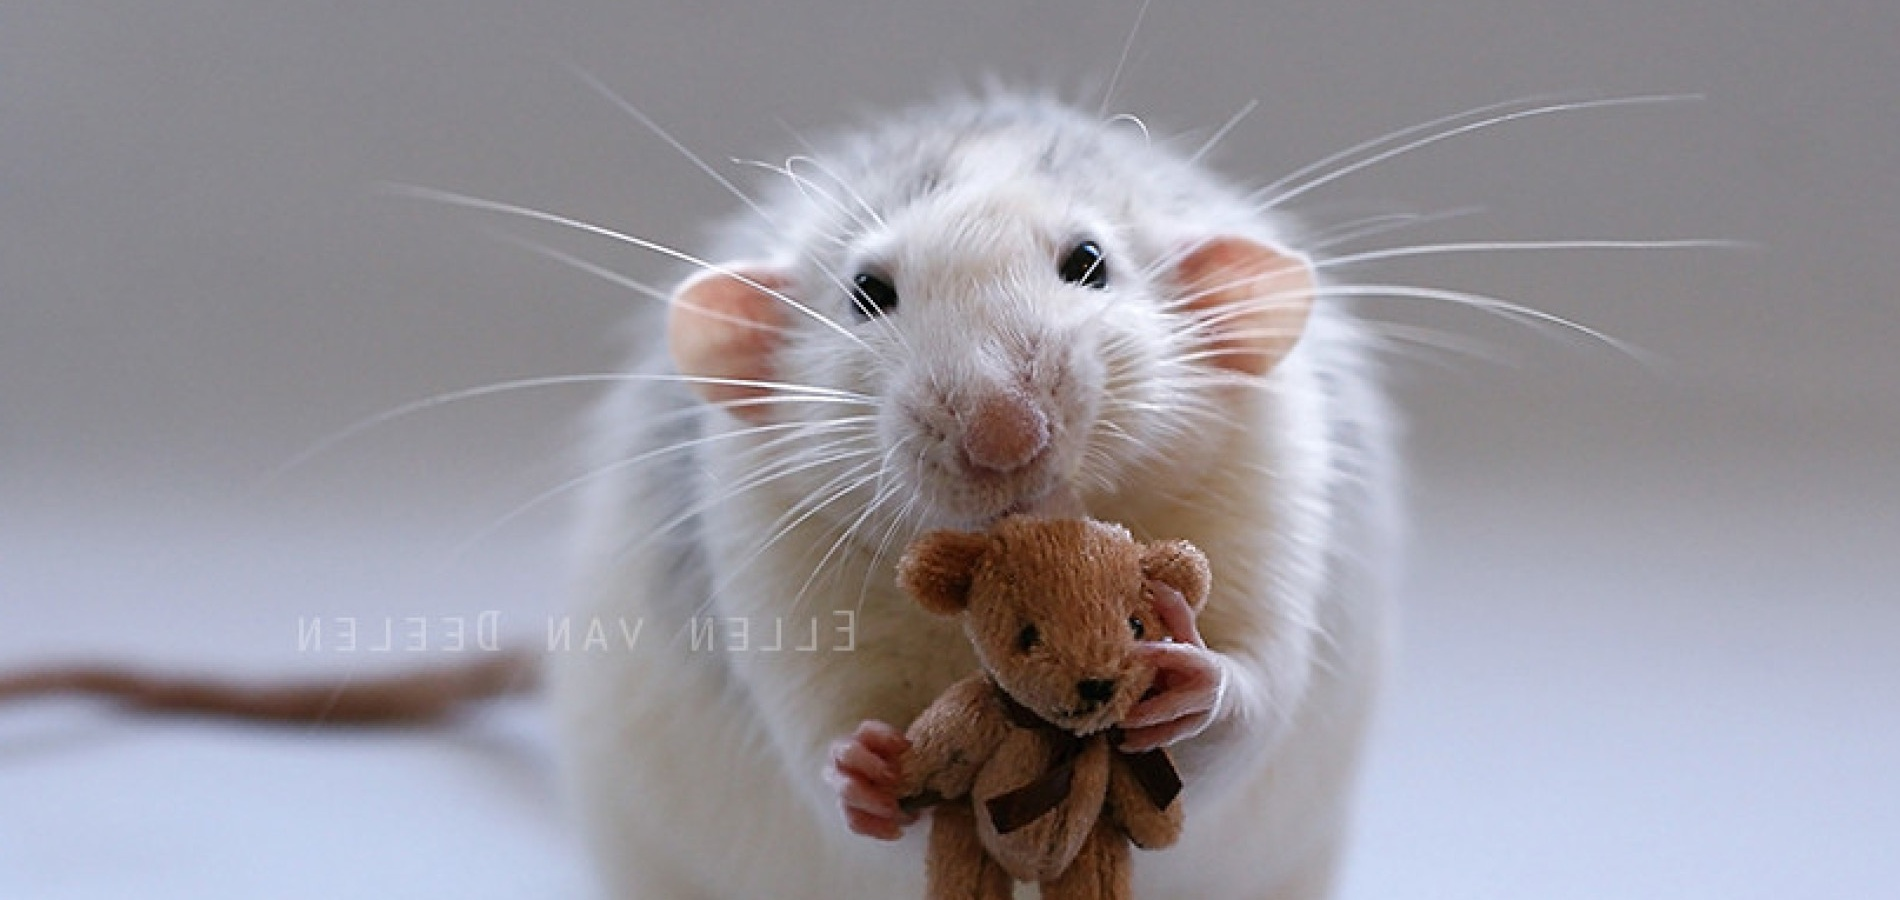 ... white rats displaying 20 images for baby white rats toolbar creator